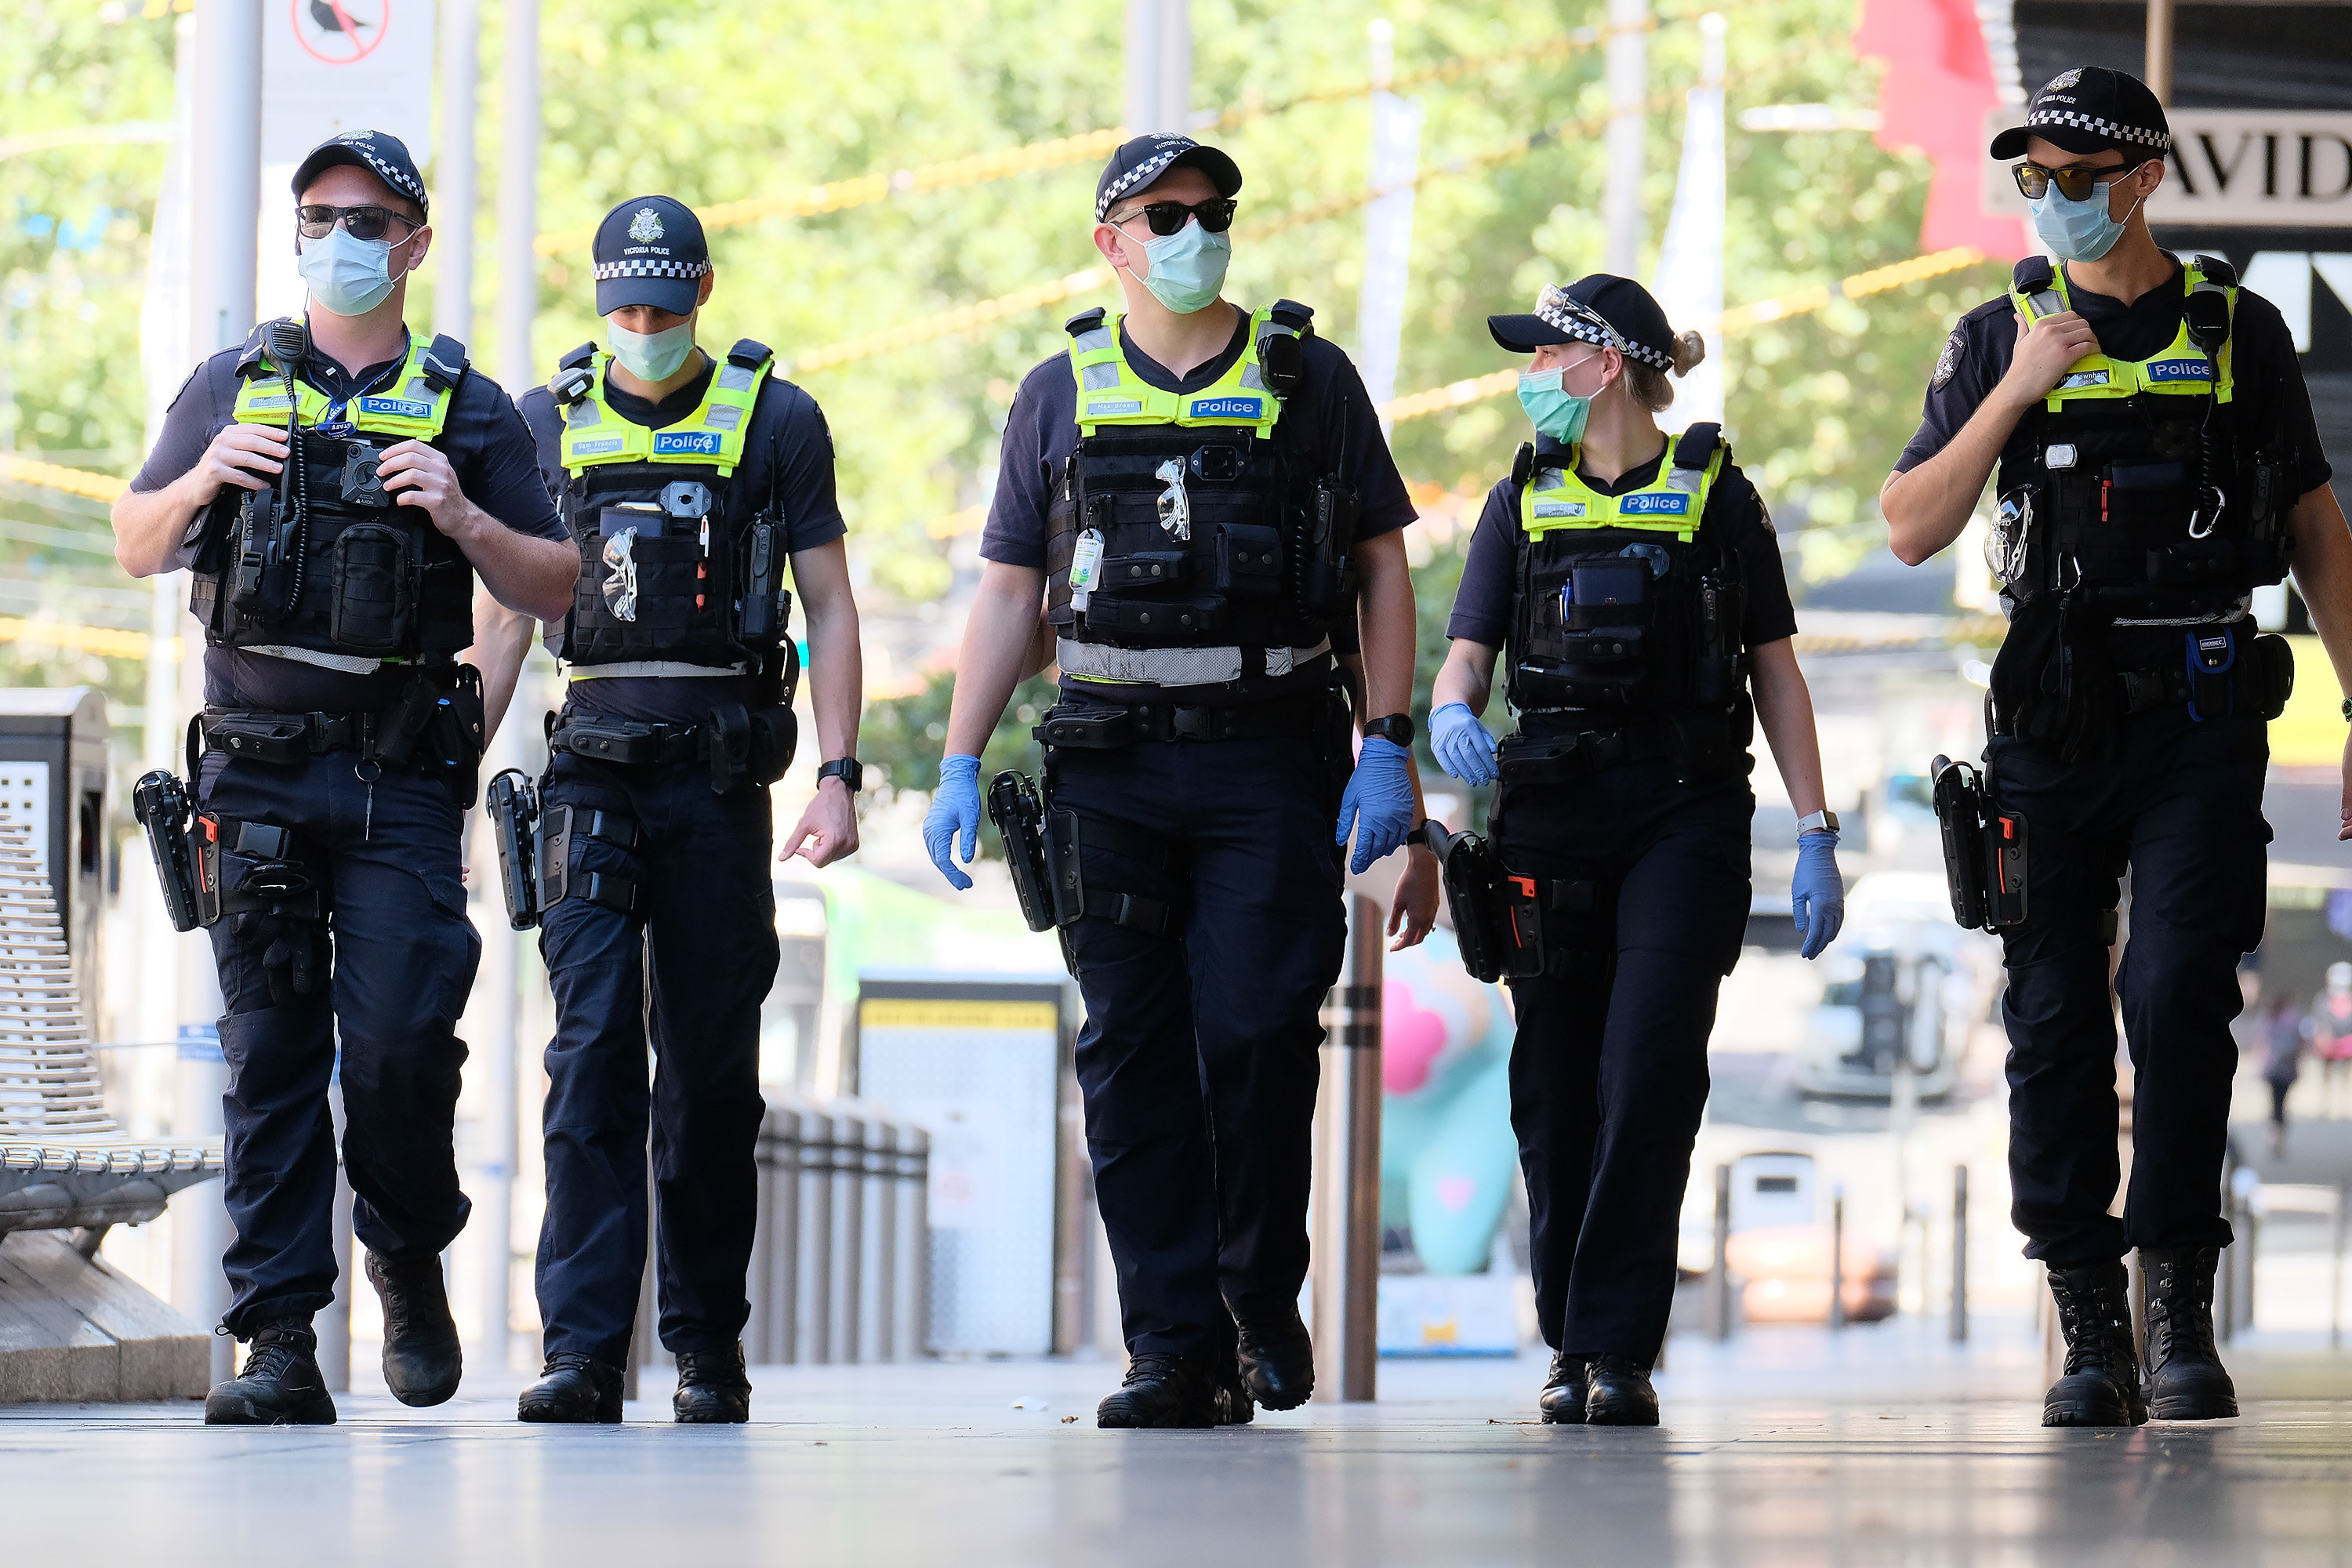 Victorian Police officers walk around  Melbourne's CBD , Monday, February 15, 2021. Victorians are in lockdown for the third time amid fears the highly infectious UK strain of coronavirus has spread in the community. (AAP Image/Luis Ascui) NO ARCHIVING